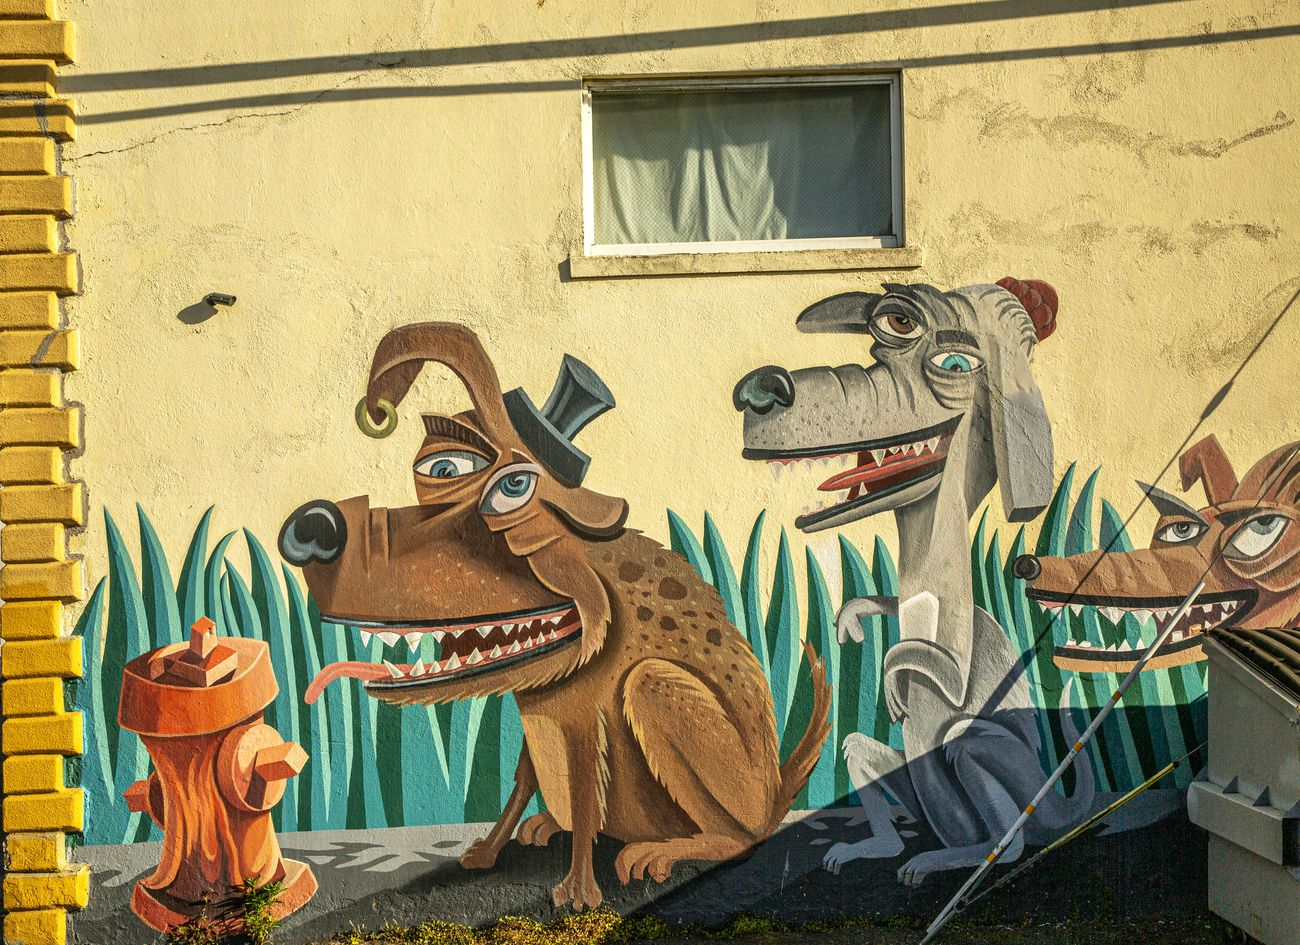 mural painted on a wall, Eureka, CA